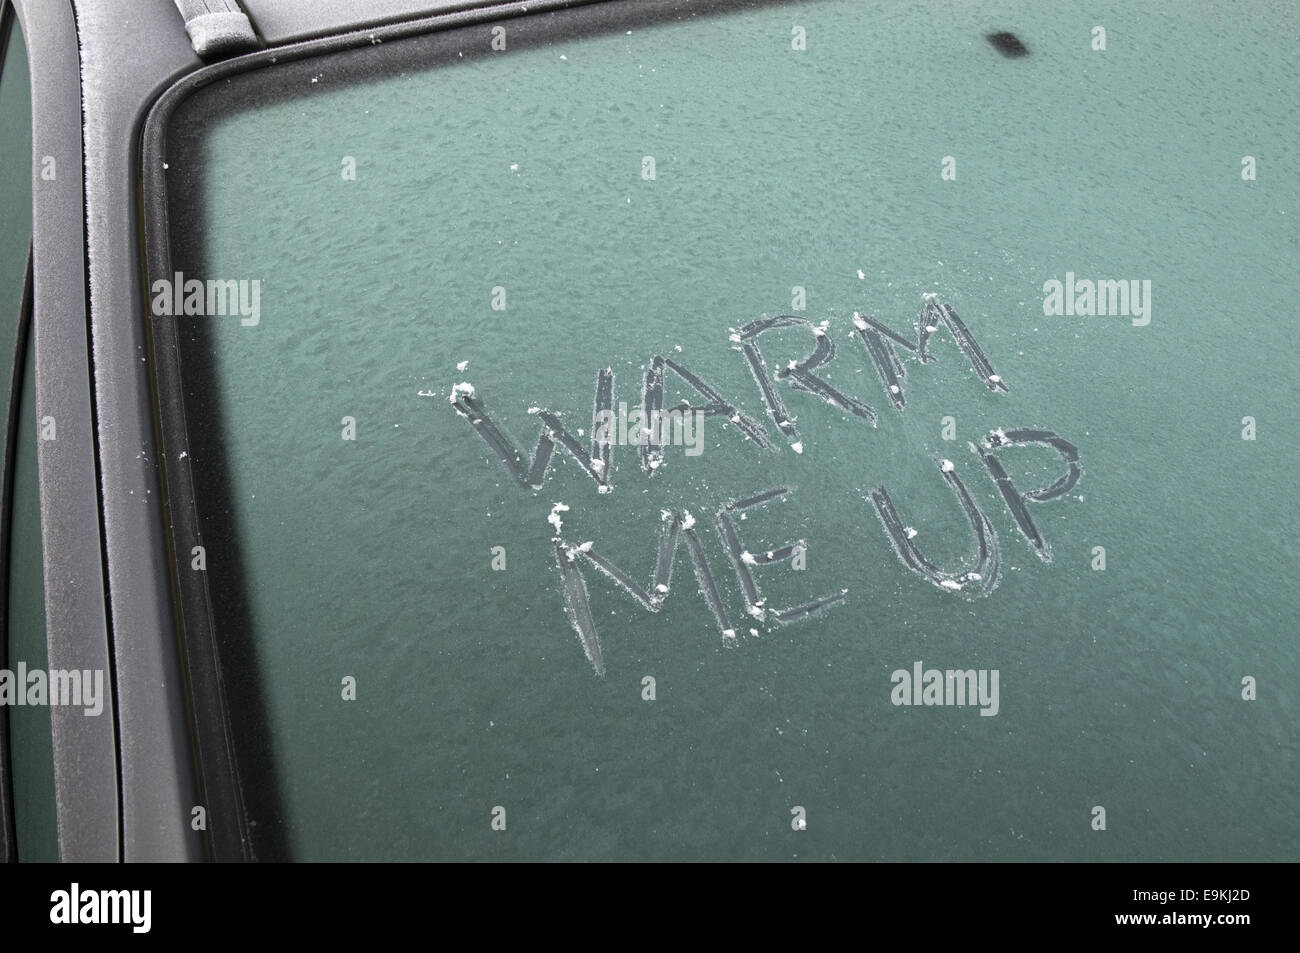 'Warm me up' scratched on to a frosty car windscreen. - Stock Image